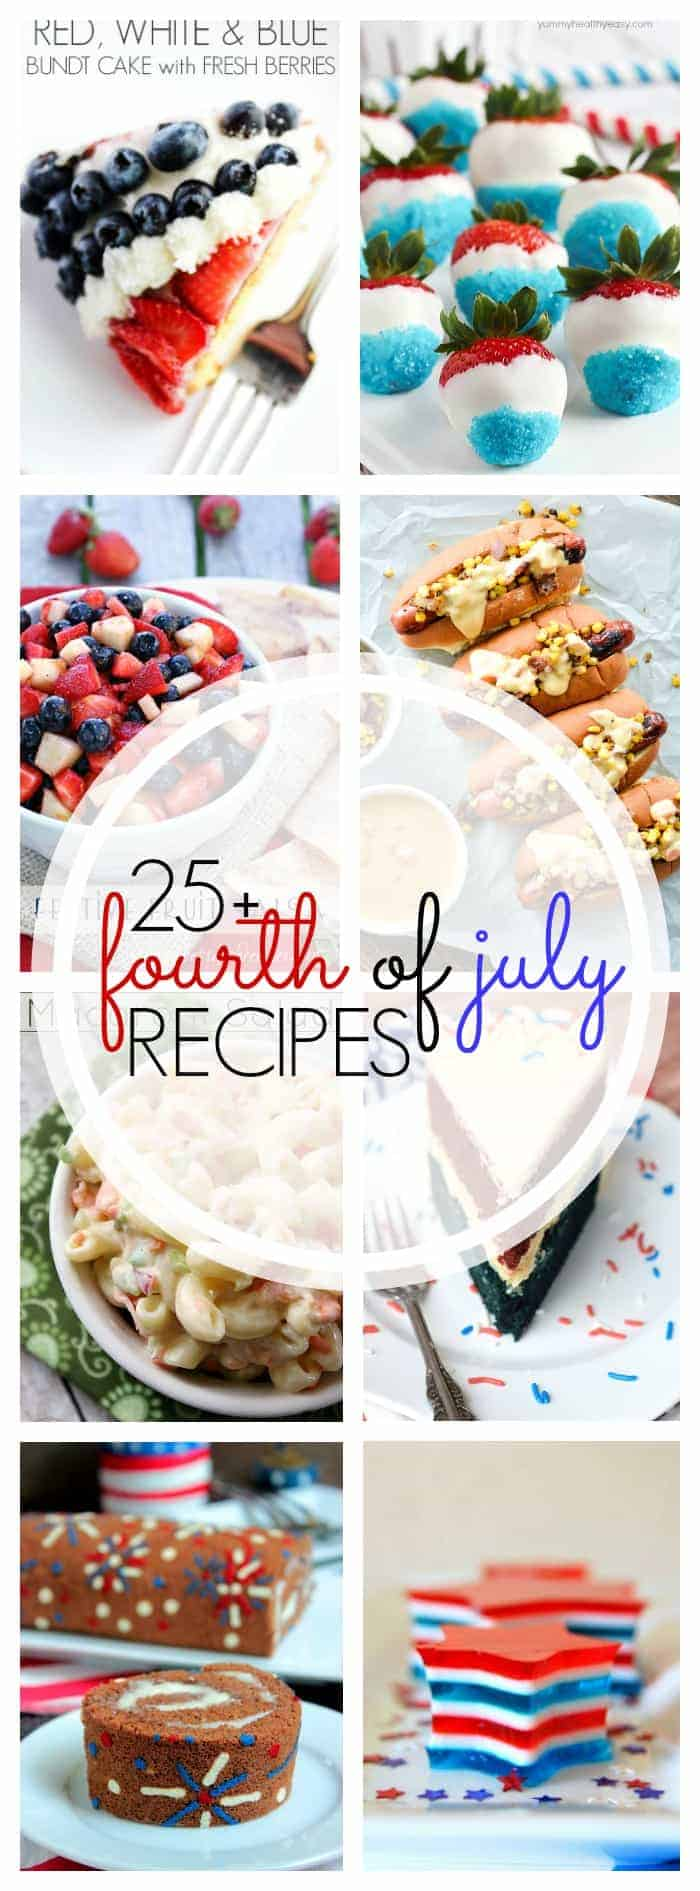 25+ recipes for July 4 and Canada Day! Desserts, drinks, sides, salads and main dishes!